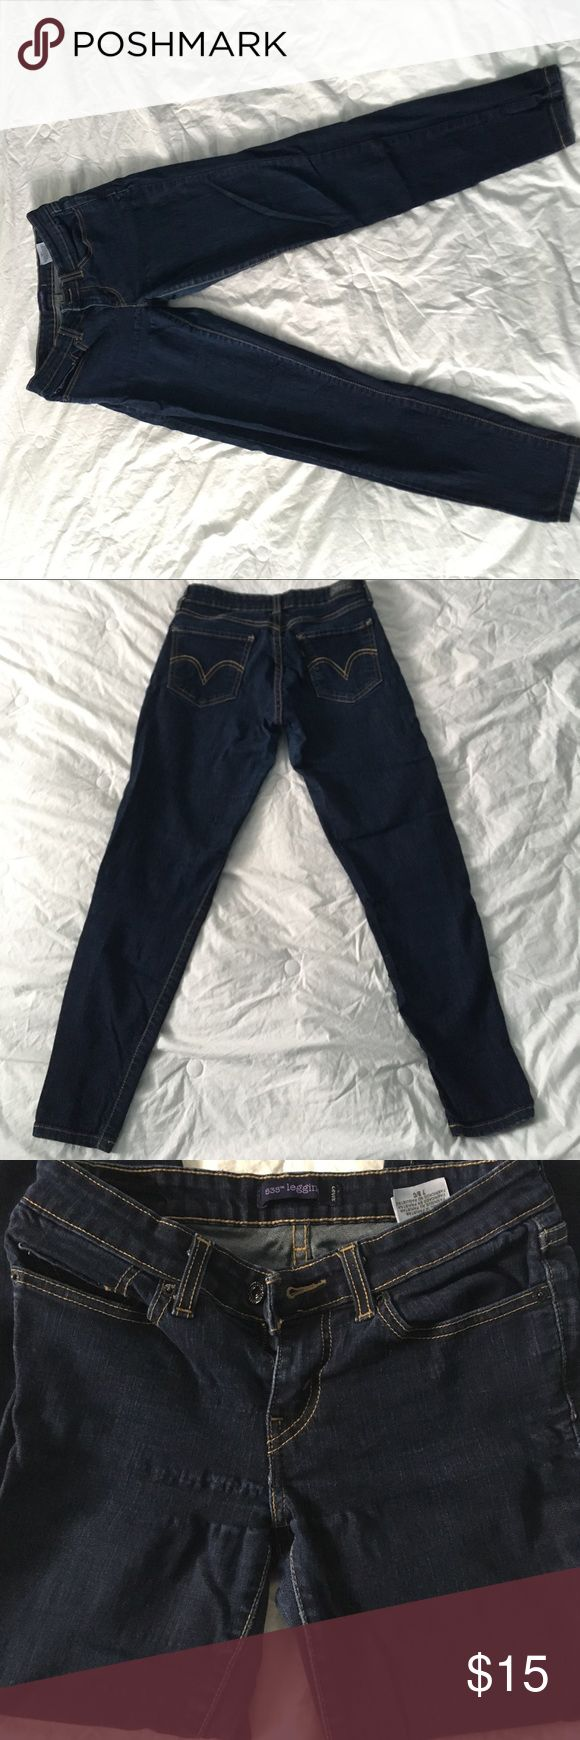 Size 7 S, LEVI STAUSS & CO, dark skinny jeans. Size 7 short, dark blue skinny jeans from LEVI STRAUSS & CO. They are stretchy. There are two 2inch pulls close to the crotch (pictures attached) on the right leg that aren't really noticeable when wearing the jeans. Levi's Jeans Skinny